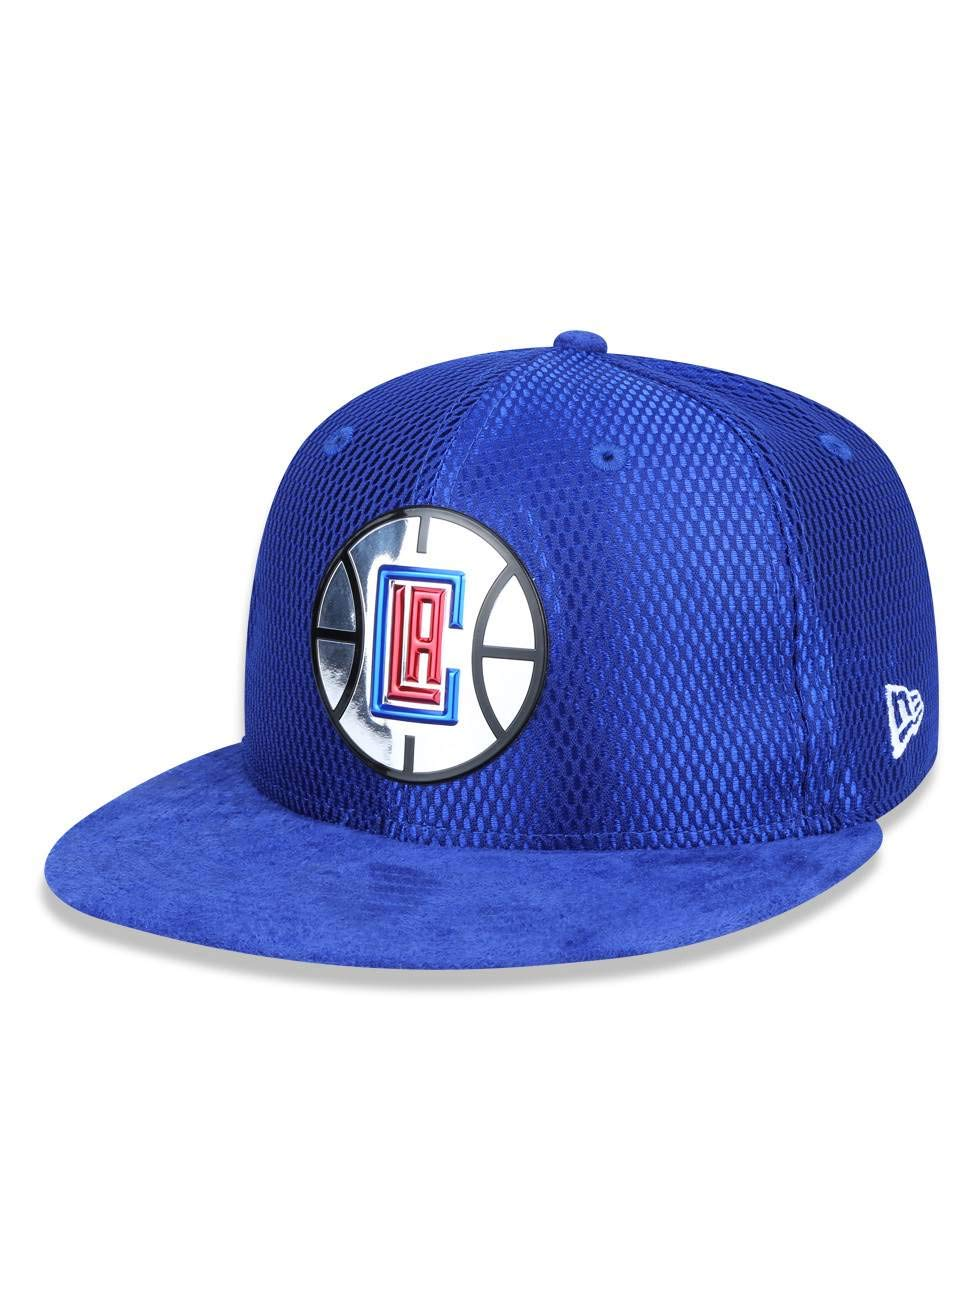 b85ef3e8abce9 Amazon.com   New Era Los Angeles Clippers 2017 NBA Draft Official 9FIFTY  Snapback Hat -Blue   Sports   Outdoors